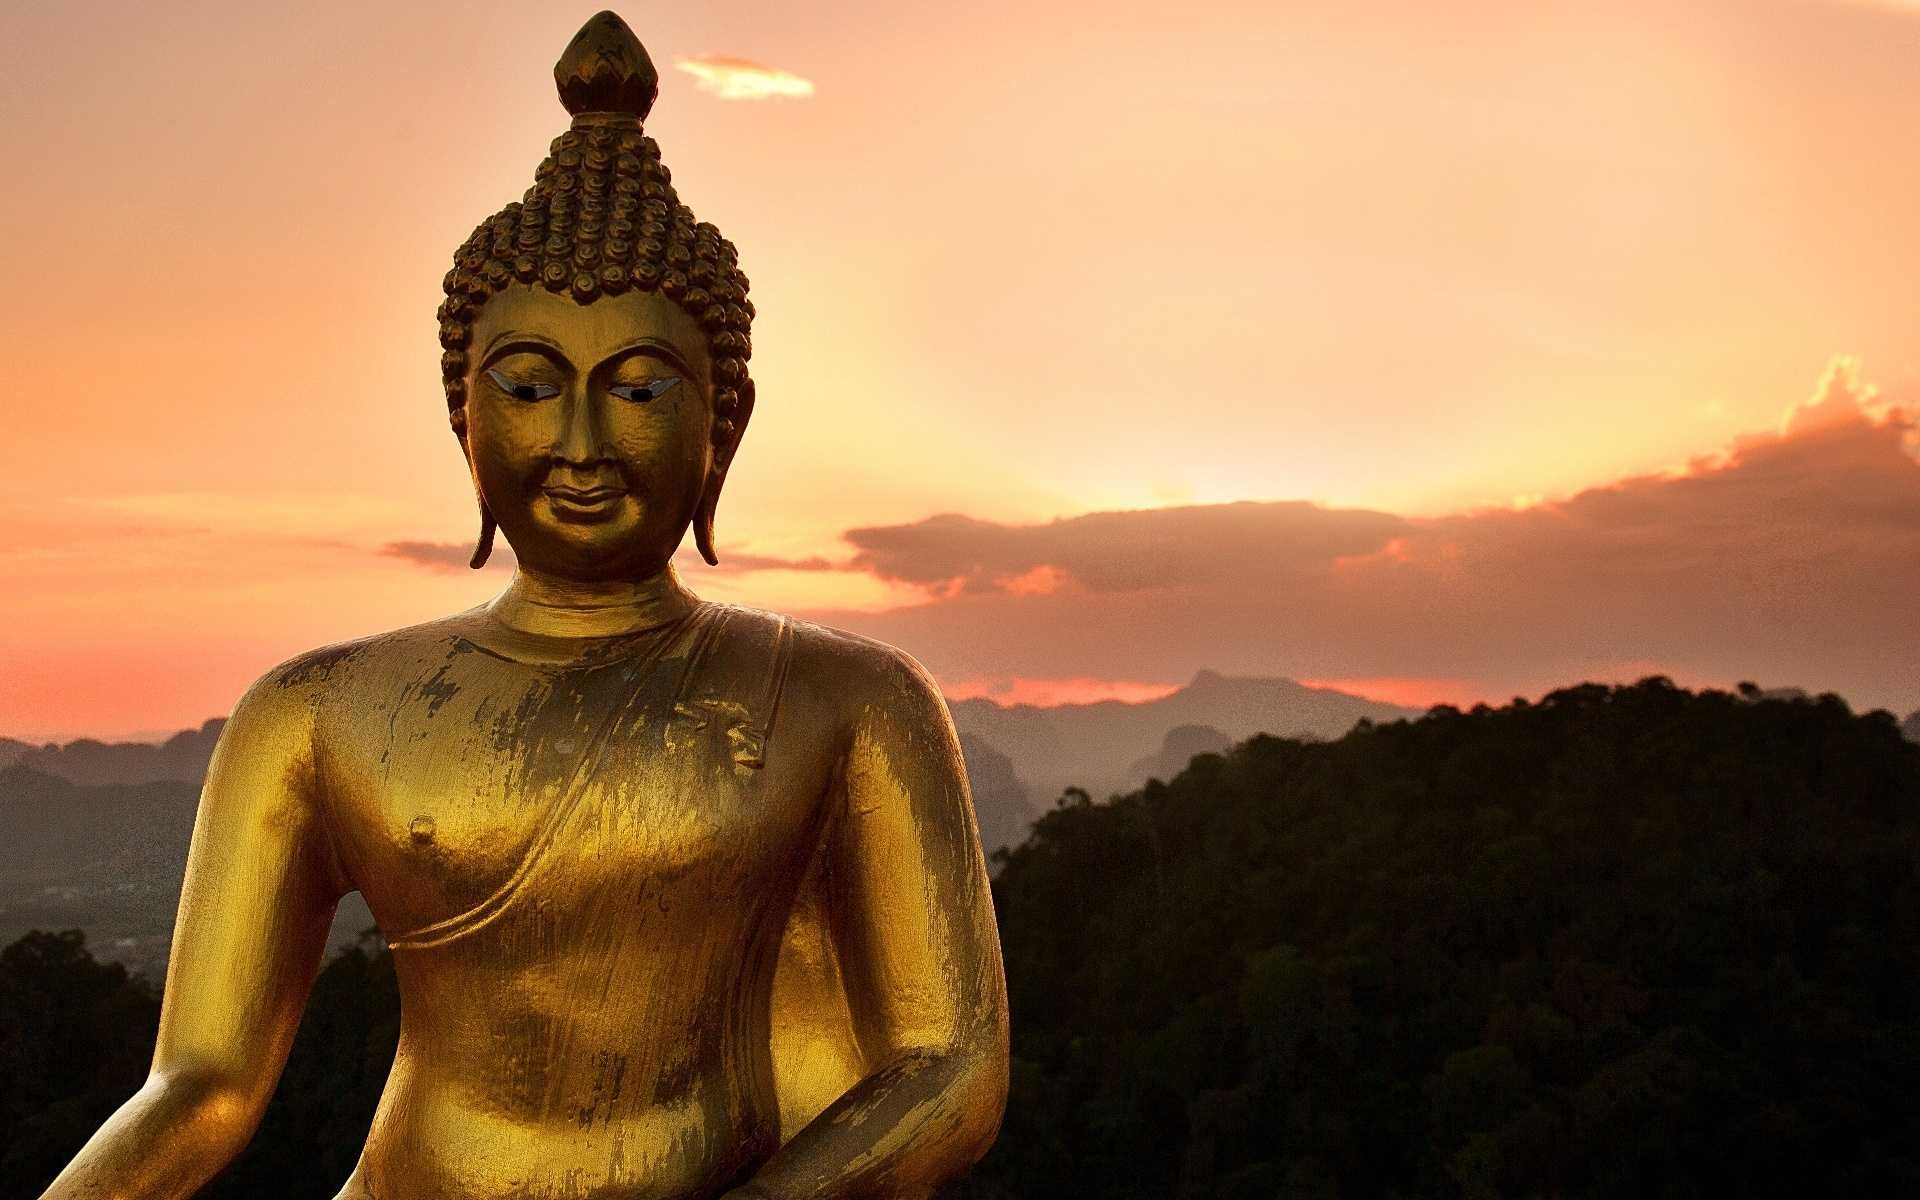 Buddha Wallpaper For Desktop And Mobile In High Resolution Download We Have Best Collection Of Lord Buddha Images Buddha Buddha Image Lord Buddha Wallpapers